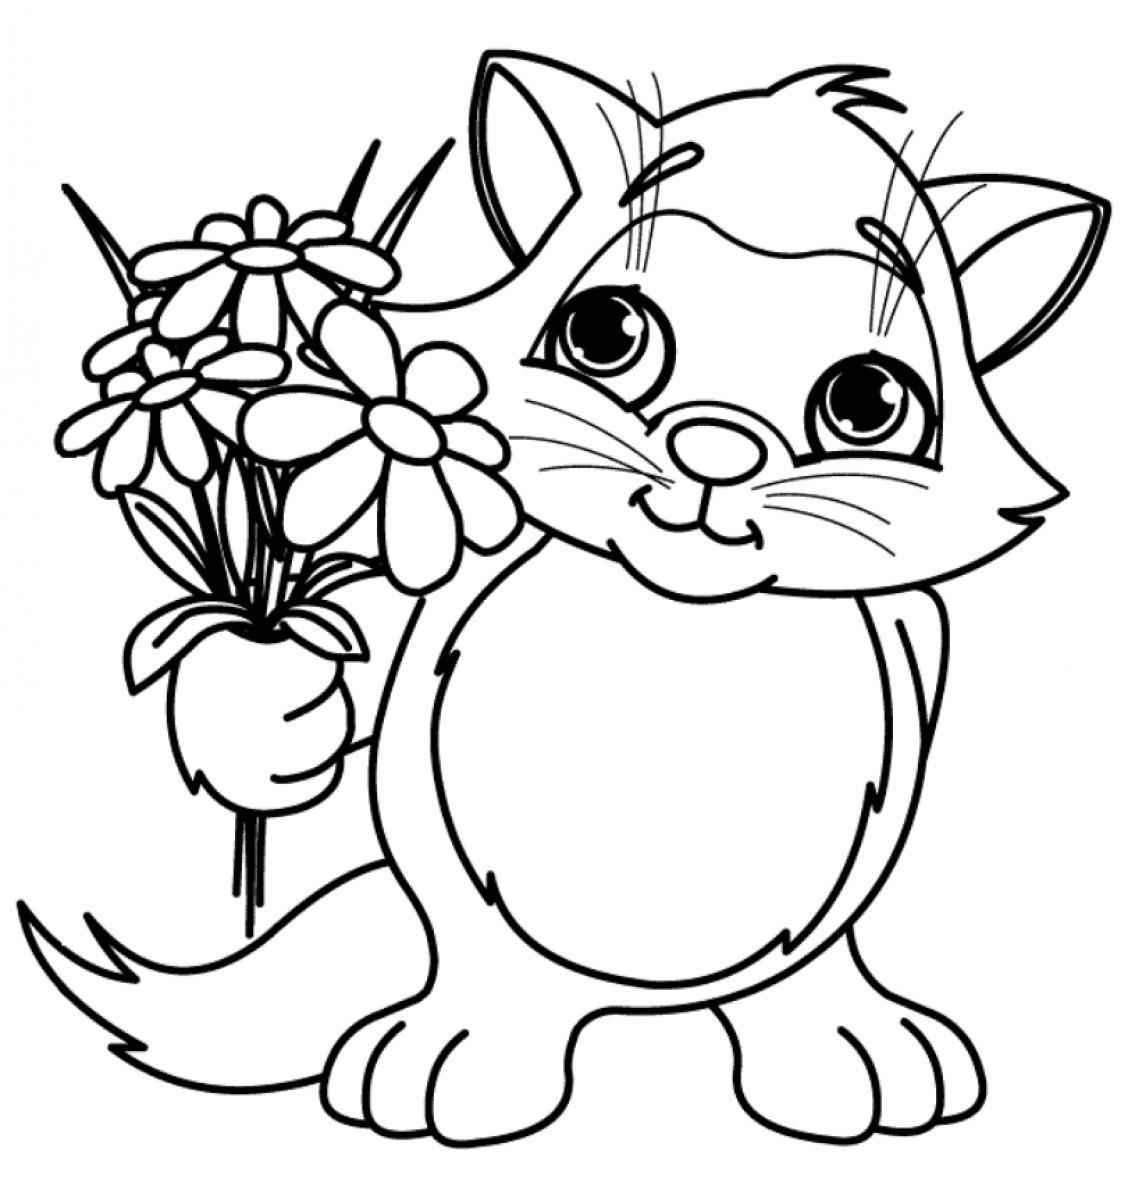 coloring picture of flower free printable flower coloring pages for kids best flower of picture coloring